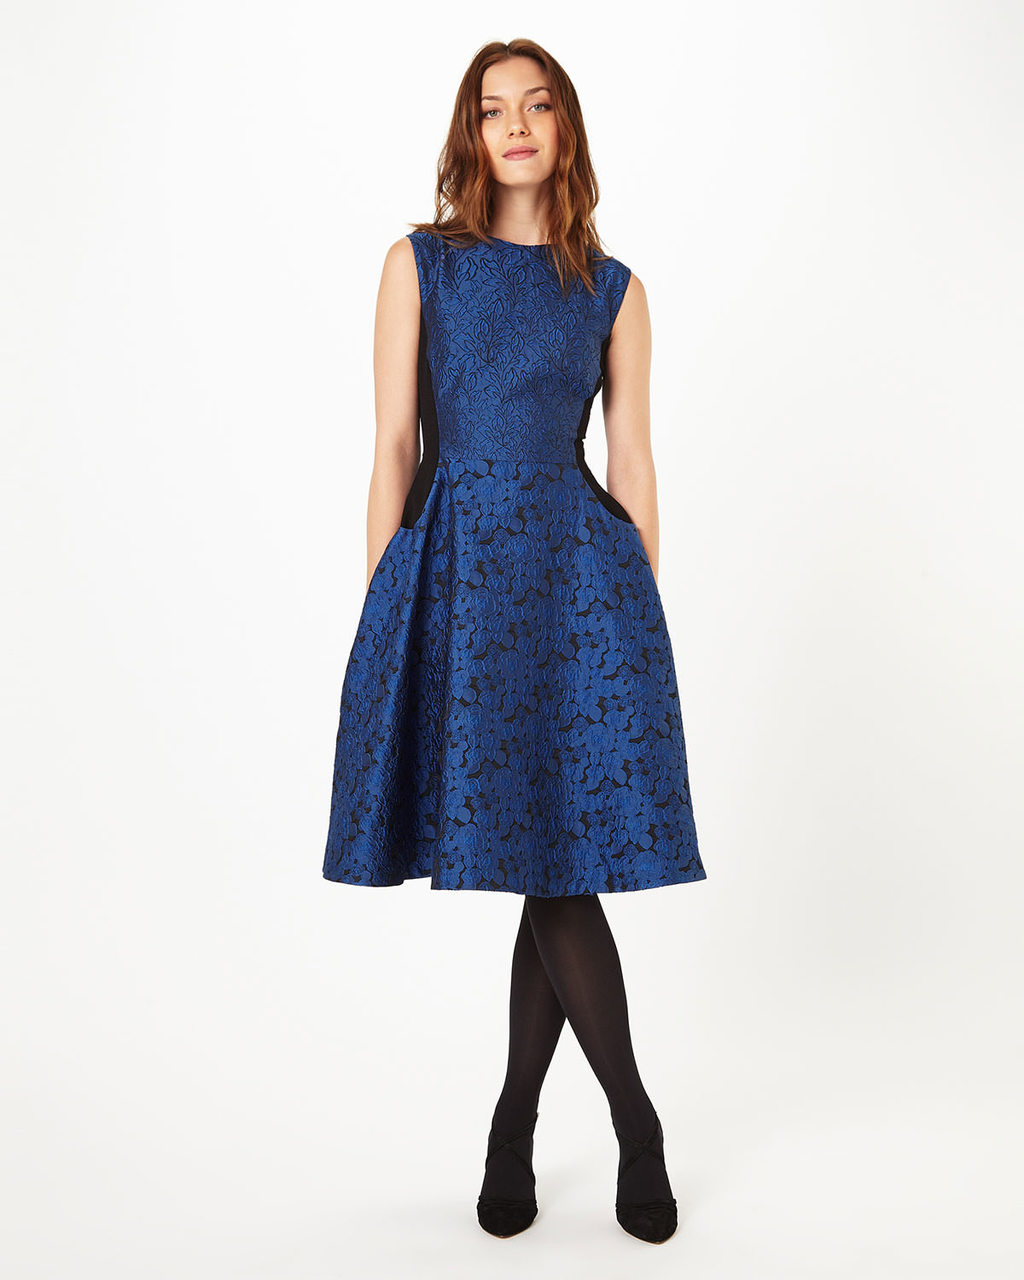 Adalyn Dress - sleeve style: sleeveless; style: full skirt; predominant colour: royal blue; secondary colour: black; occasions: evening; length: on the knee; fit: fitted at waist & bust; fibres: polyester/polyamide - 100%; neckline: crew; sleeve length: sleeveless; texture group: lace; pattern type: fabric; pattern size: standard; pattern: patterned/print; season: a/w 2016; wardrobe: event